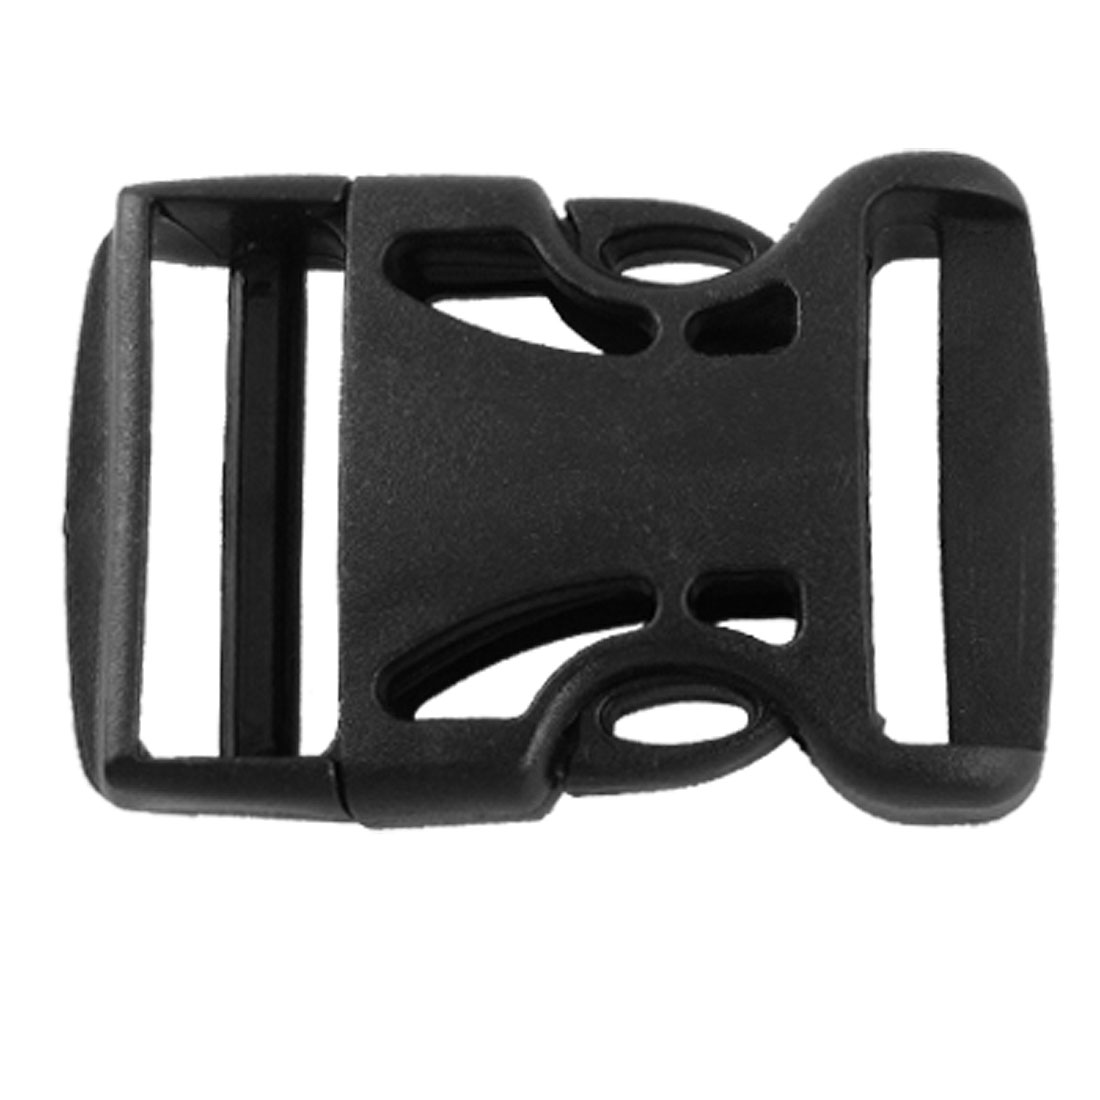 Packbag Black Plastic Side Quick Release Buckle 1 1/2""